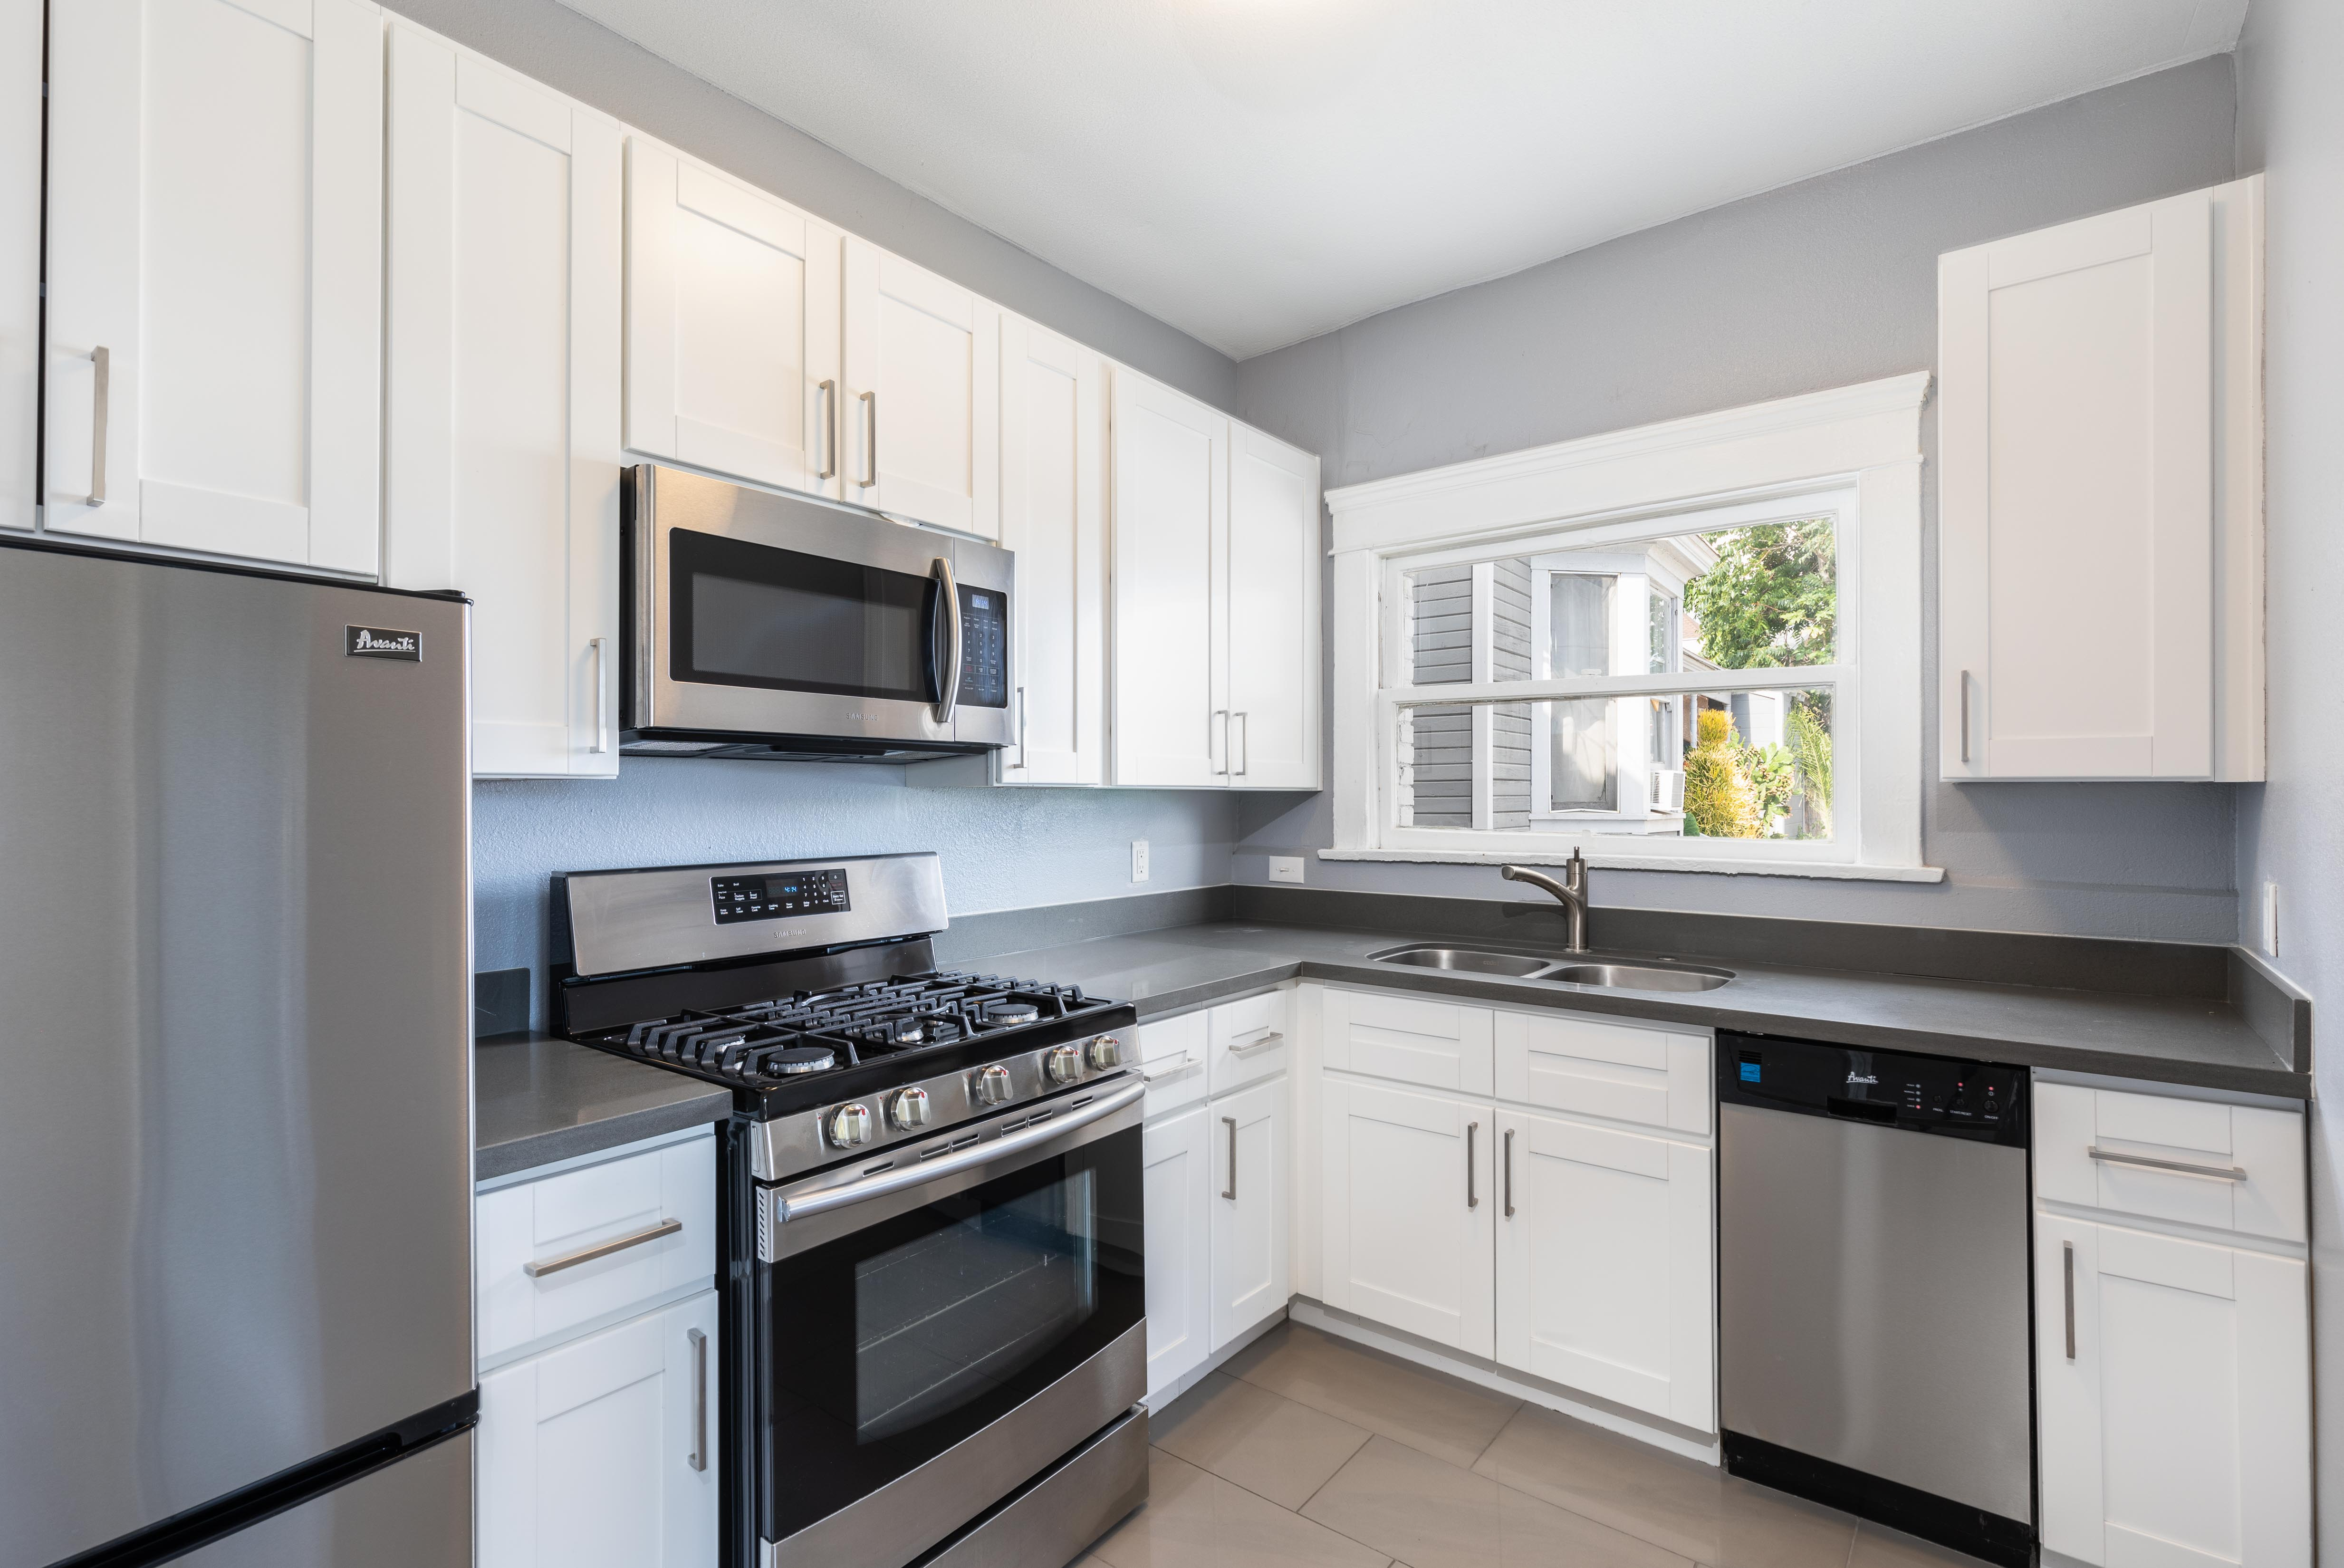 Prime Lincoln Heights 1 Bedroom + Den   All Appliances Included   Option For Parking!